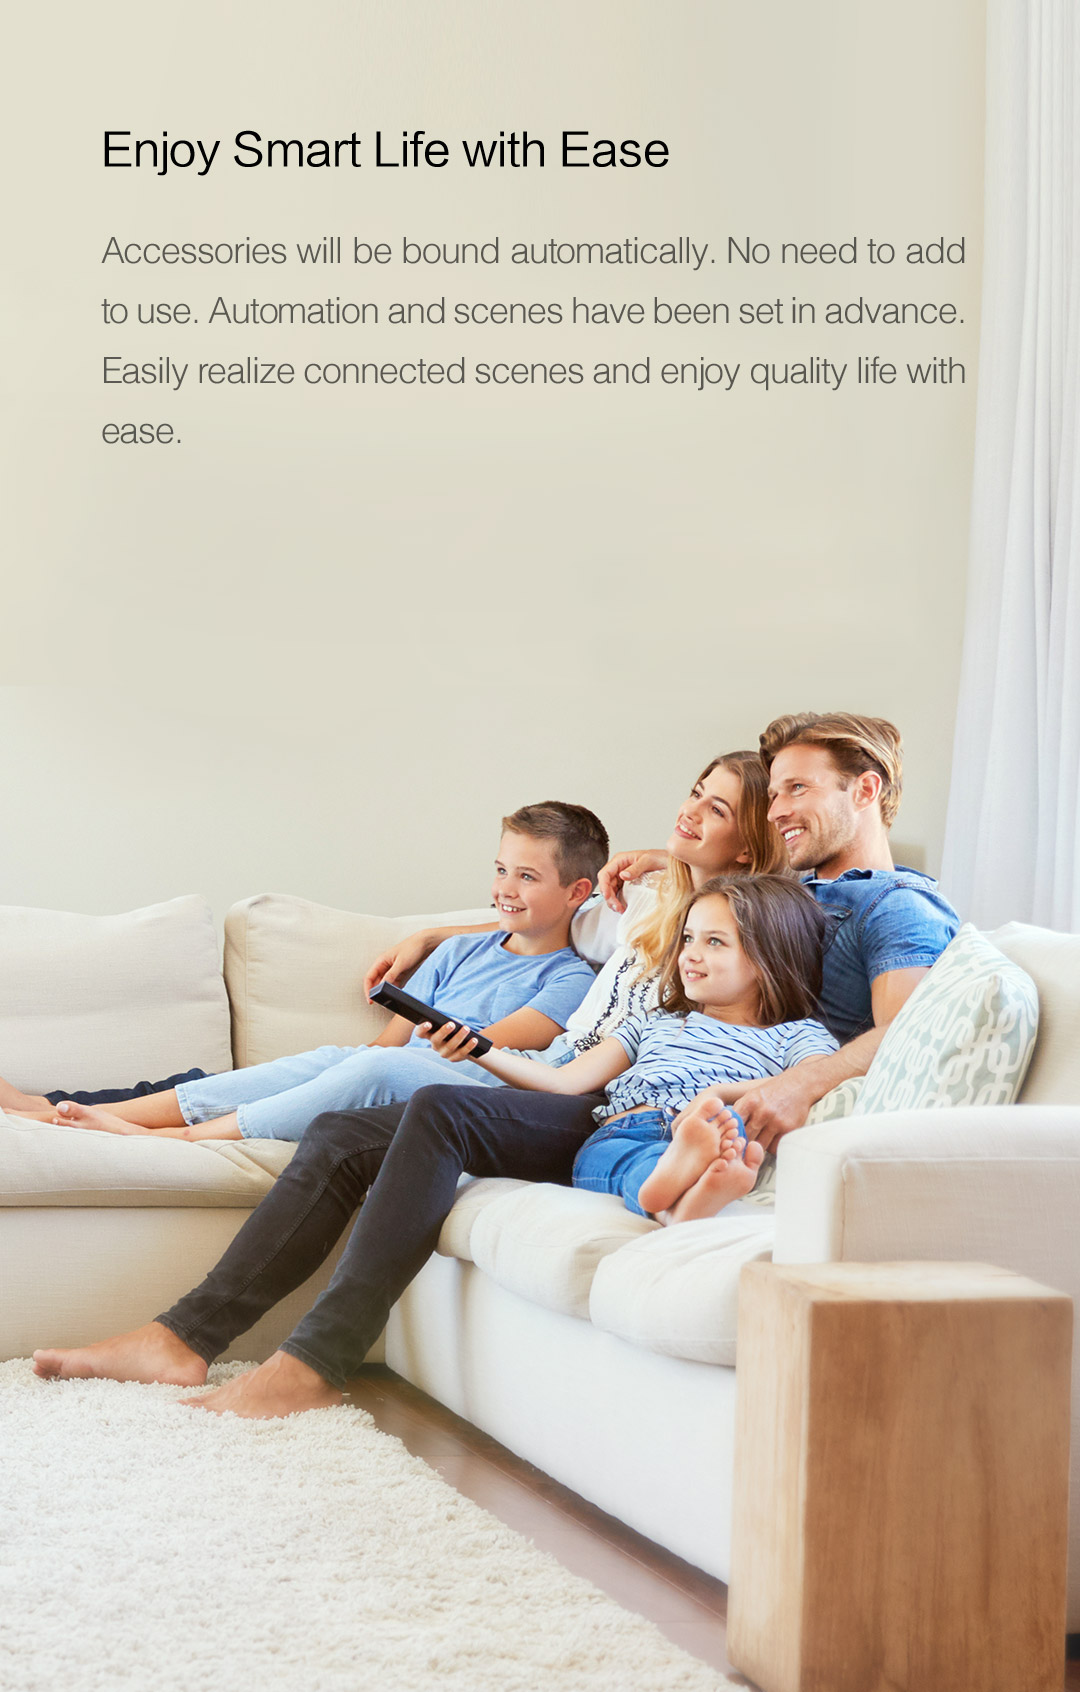 Build your smart home with Aqara and enjoy smart life with ease